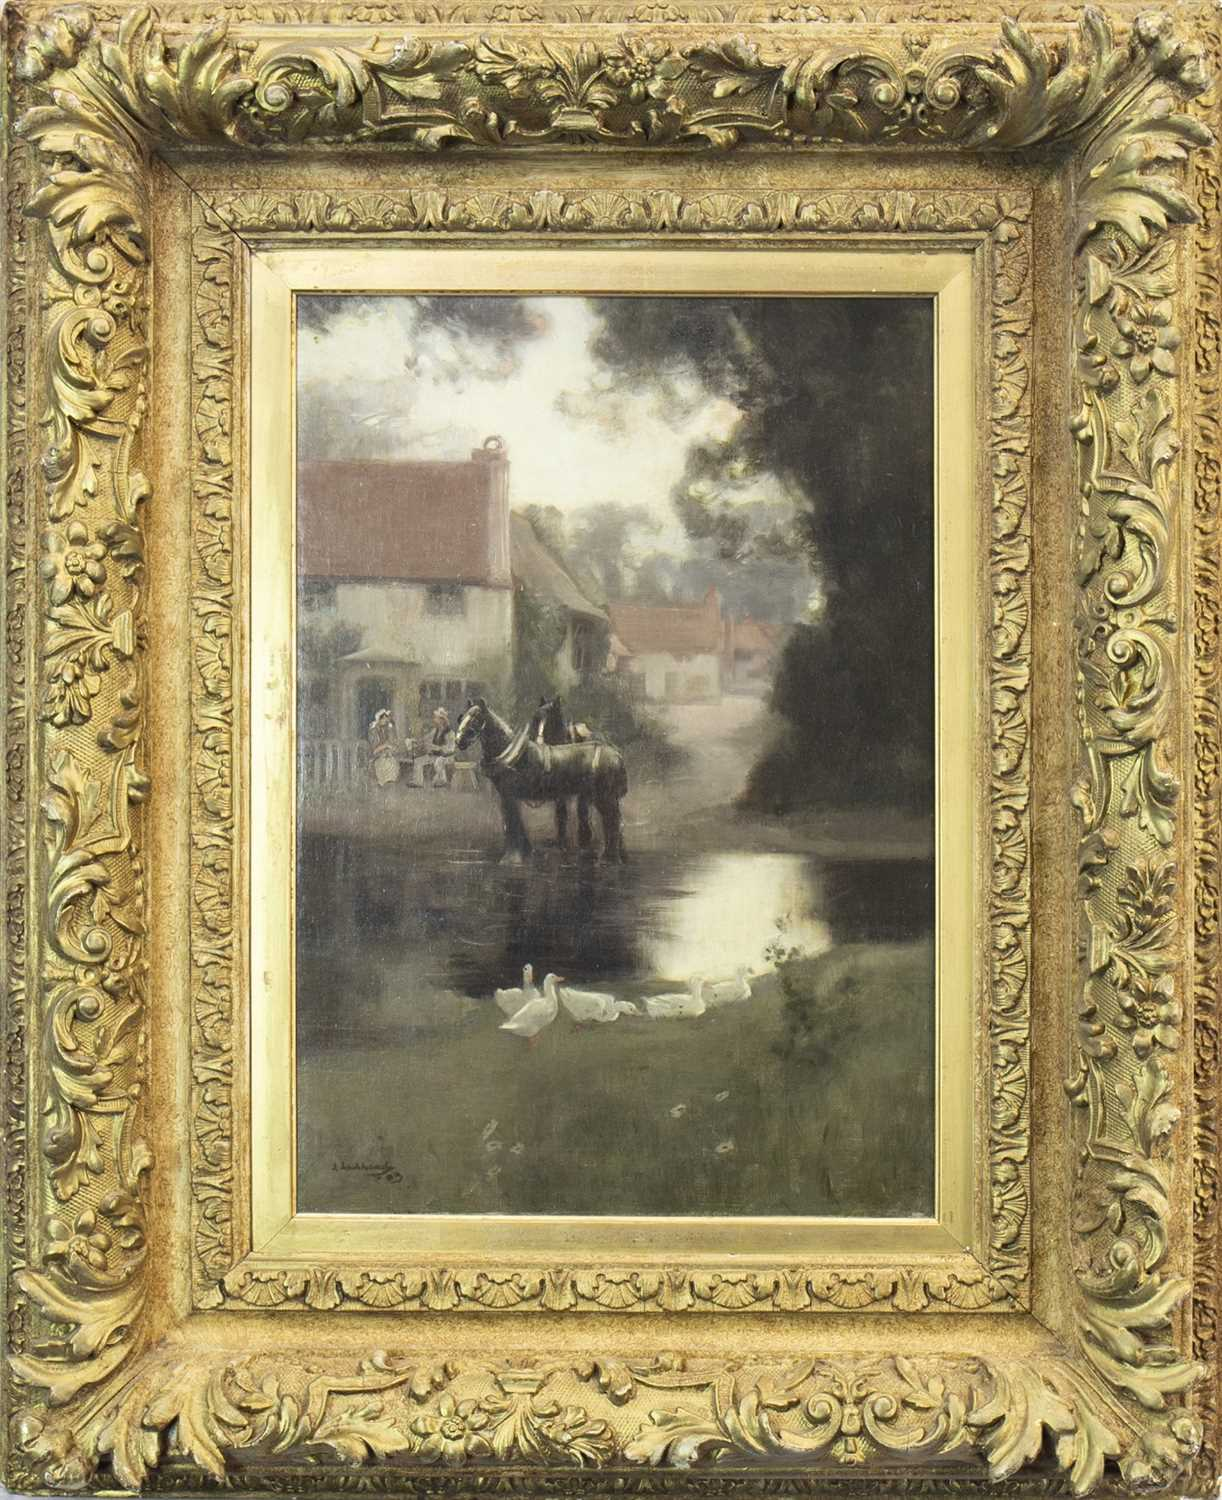 Lot 425-RURAL SCENE WITH HORSE AND DUCKS, AN OIL BY JOHN LOCHHEAD